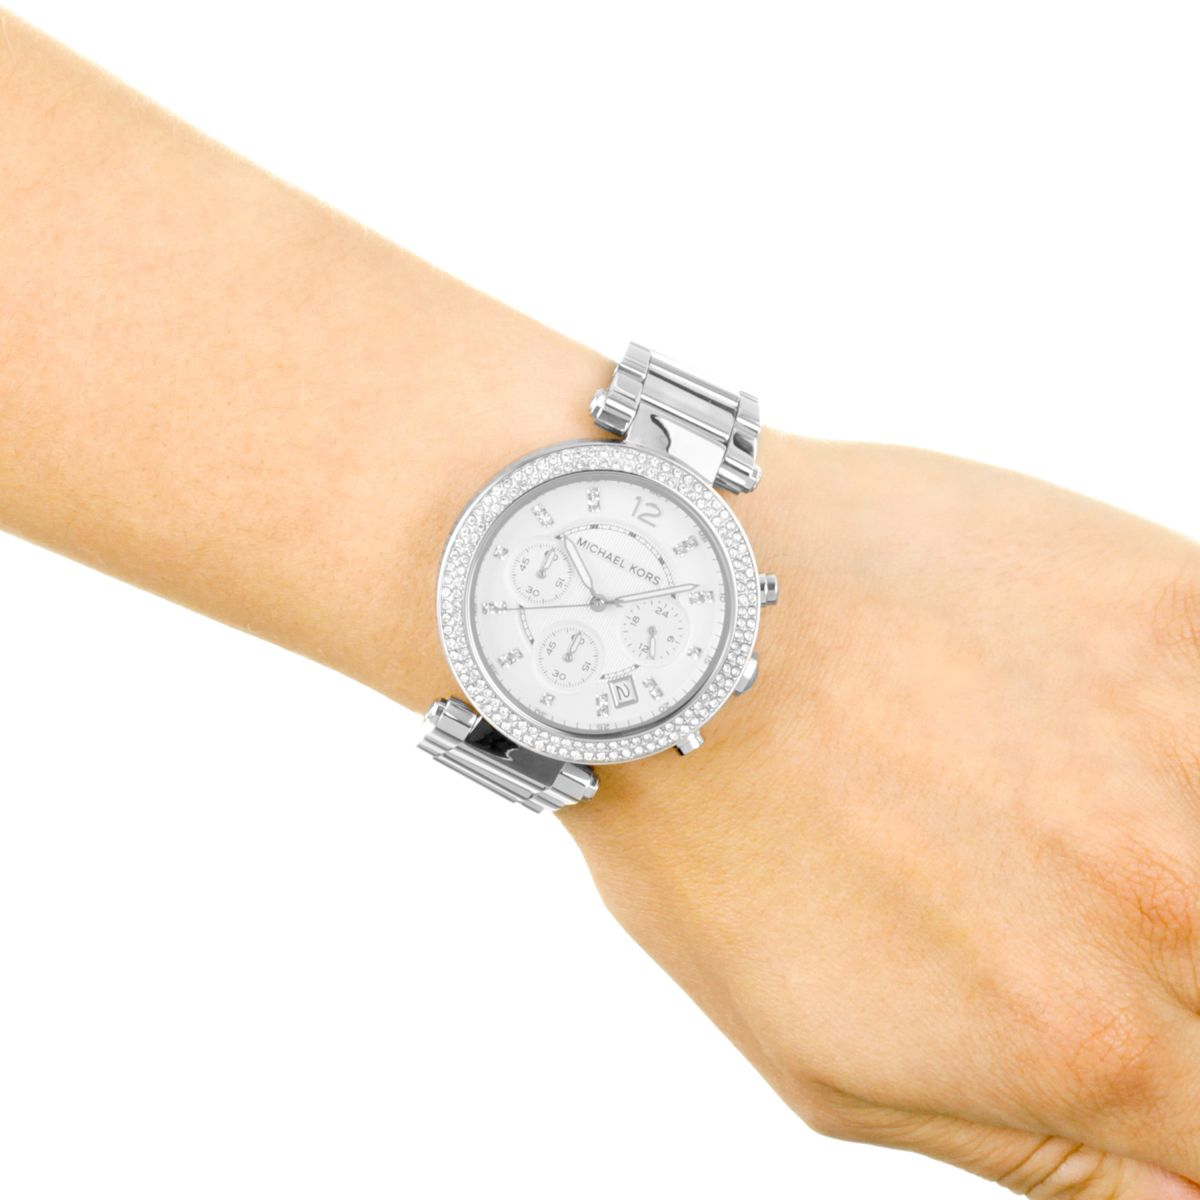 How to change date on michael kors watch in Brisbane